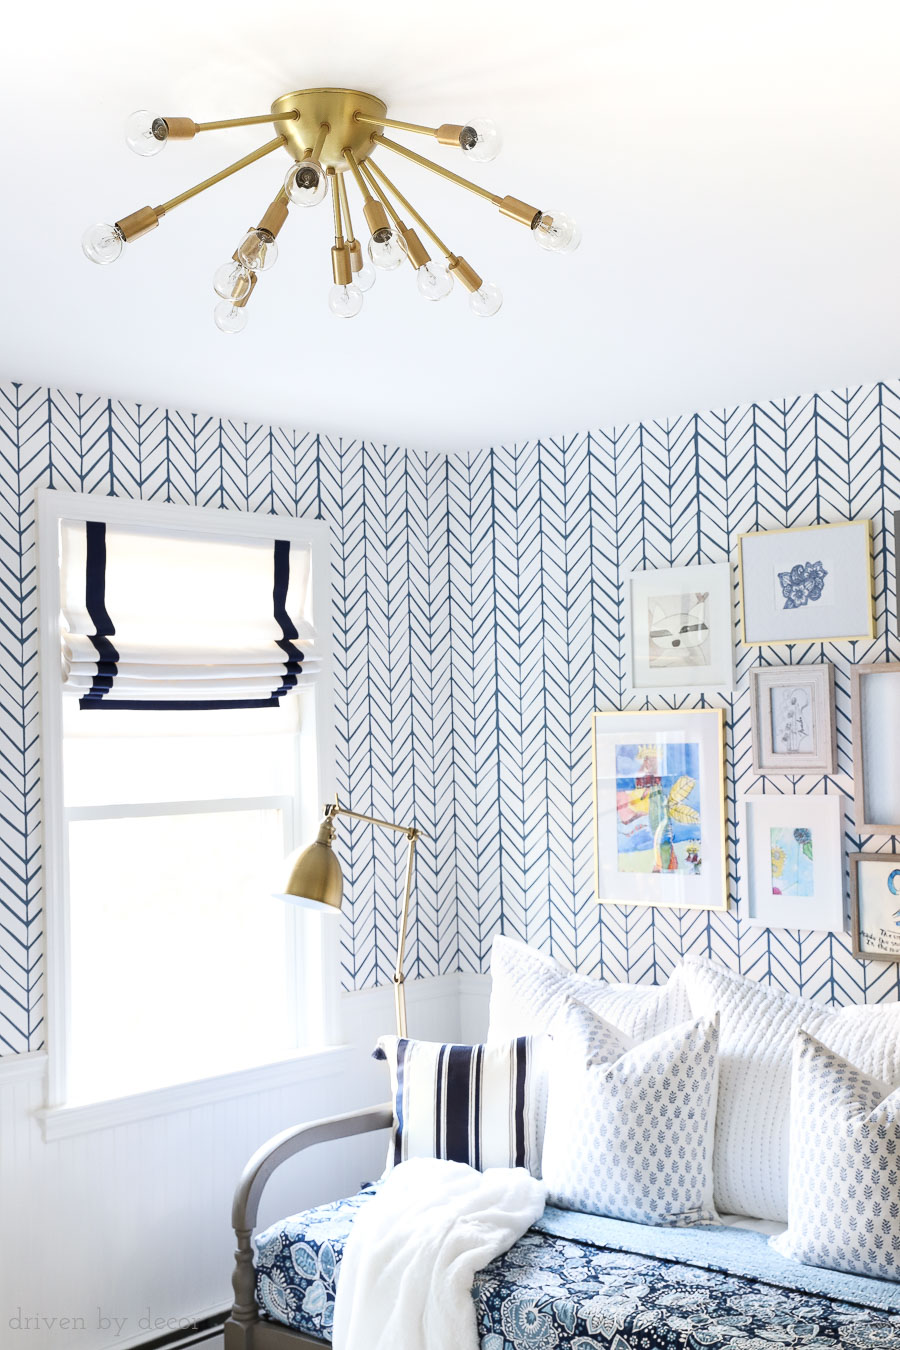 Gorgeous brass sputnik flush mount ceiling light fixture! Perfect for this kid friendly space!